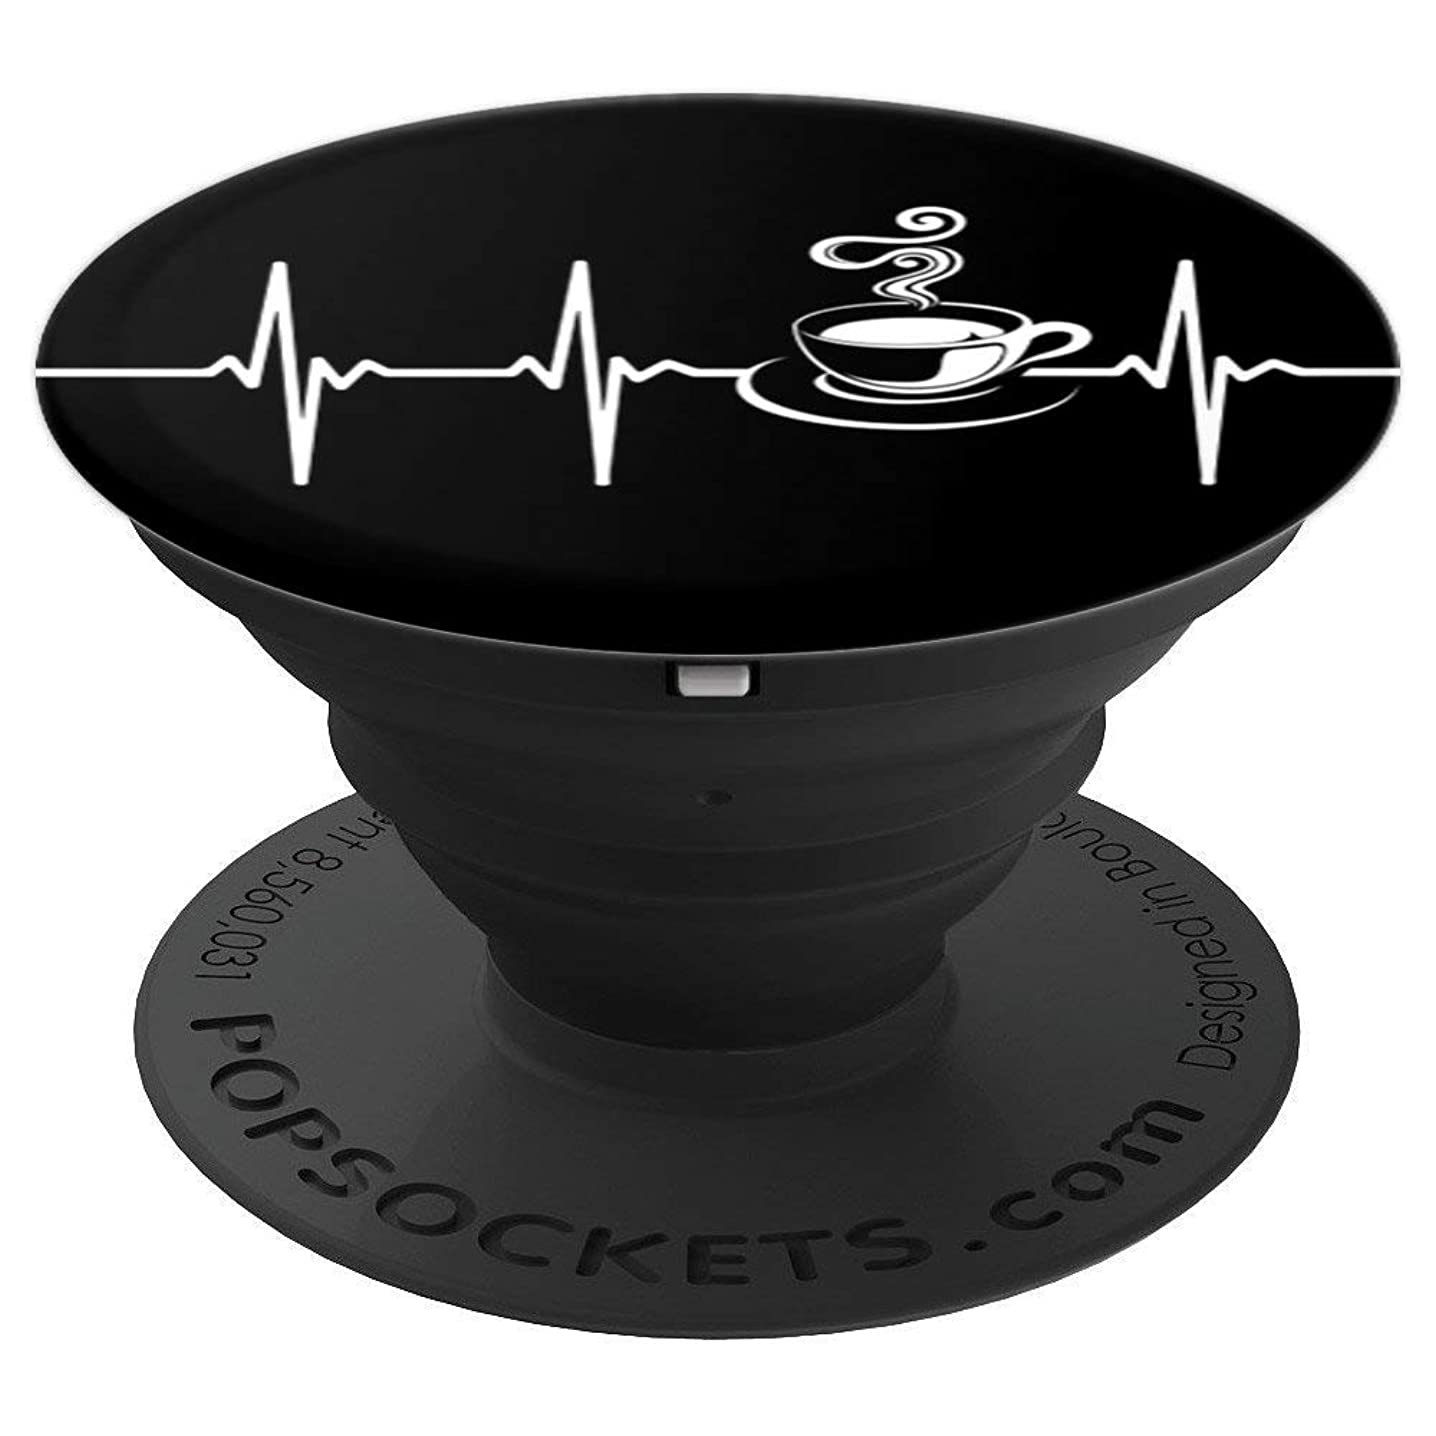 Coffee Lover Cup of Coffee Heartbeat EKG - PopSockets Grip and Stand for Phones and Tablets